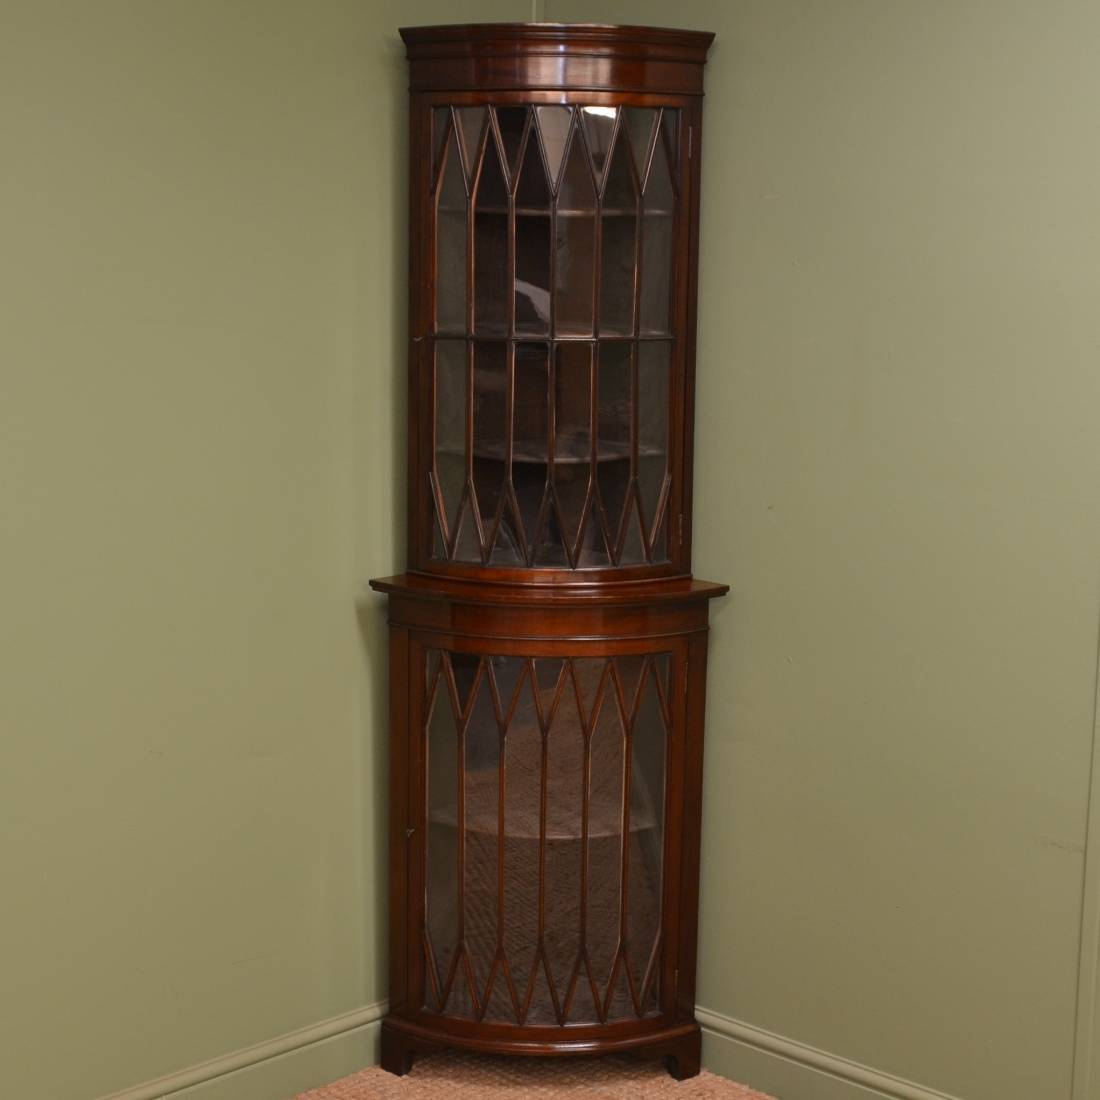 Spectacular Edwardian Bow Fronted Floor Standing Glazed Corner Cabinet Antiques World